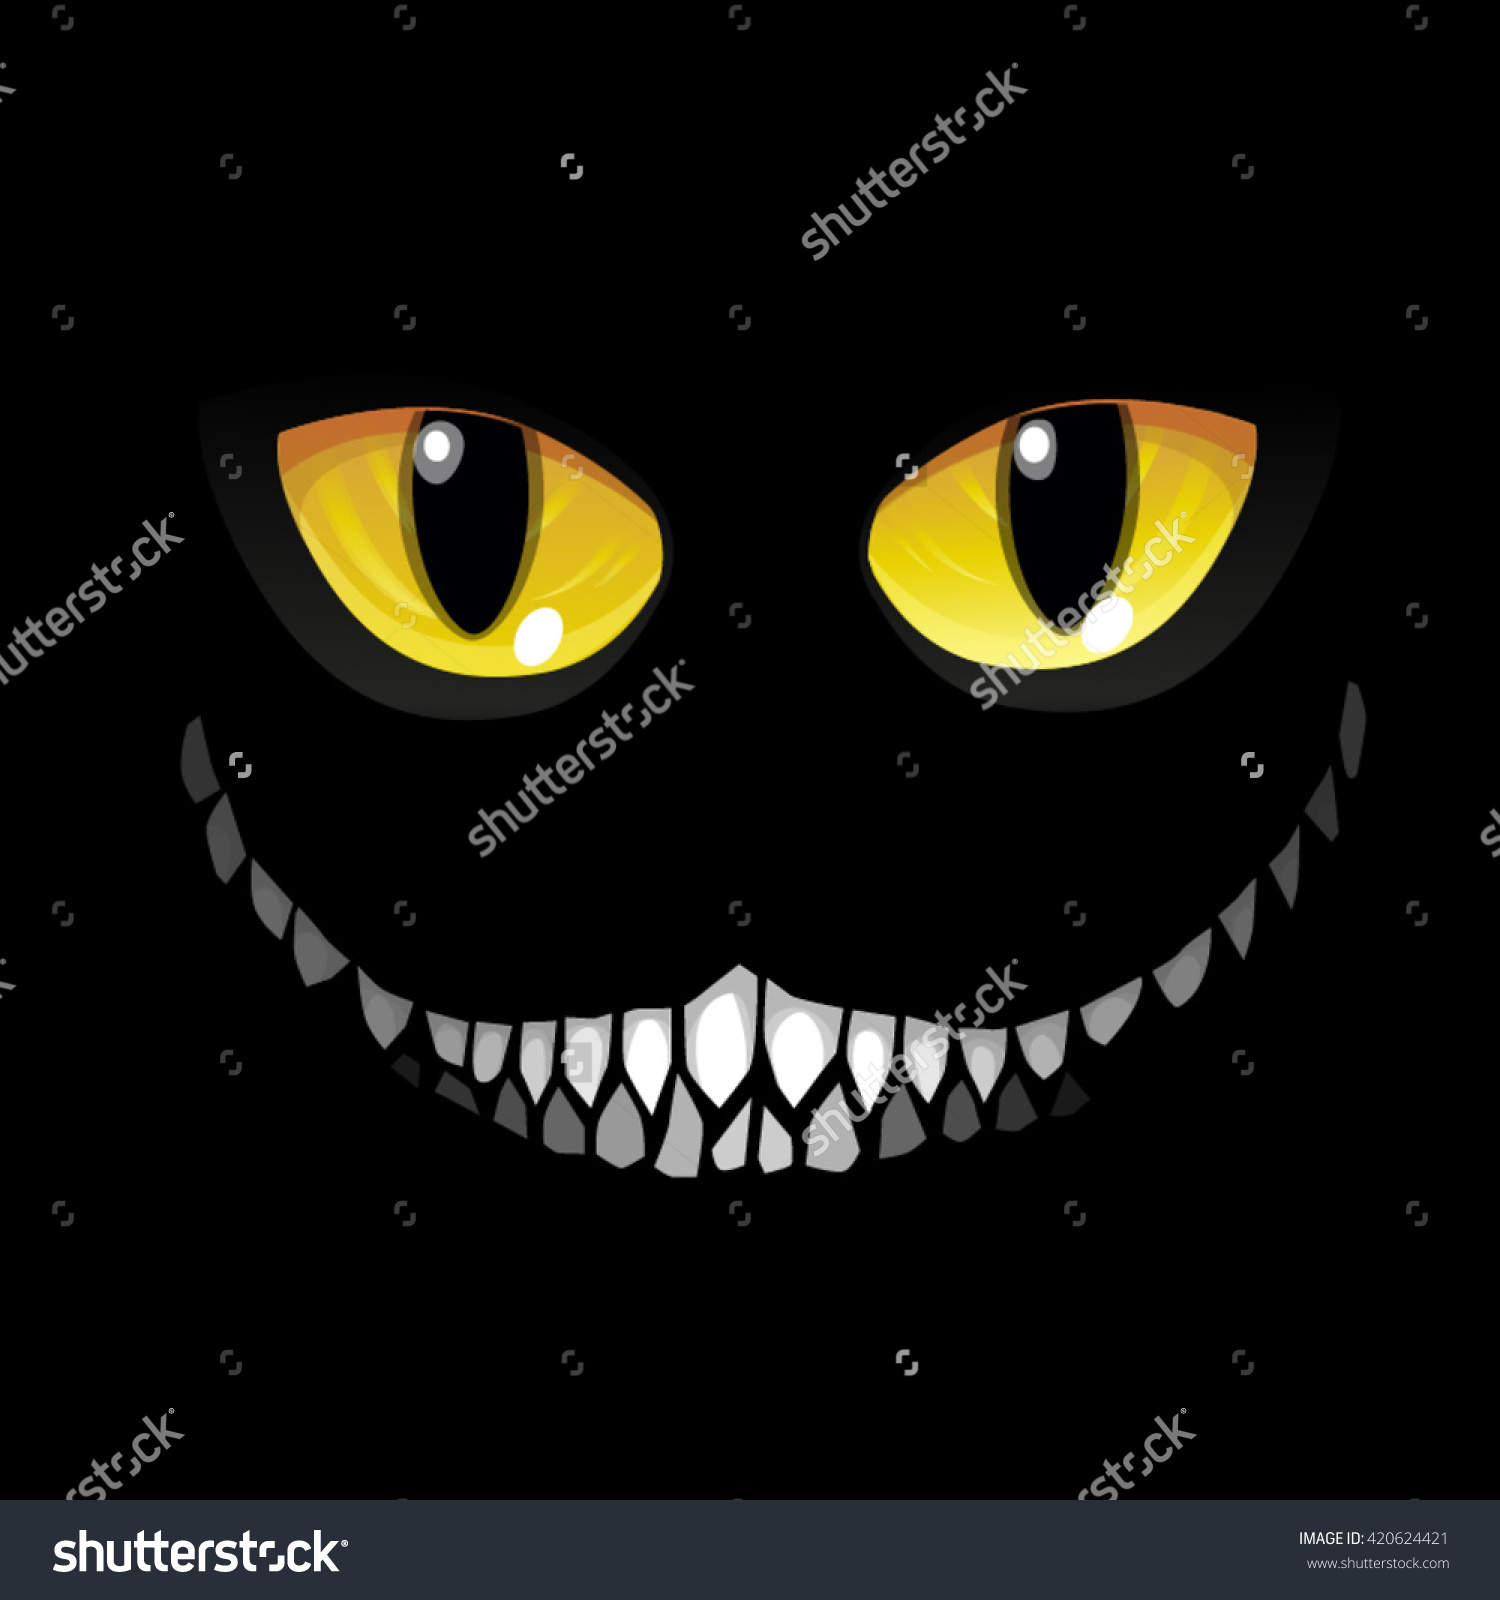 Black Cat Darkness Glowing Eyes Sinister Stock Vector 420624421.